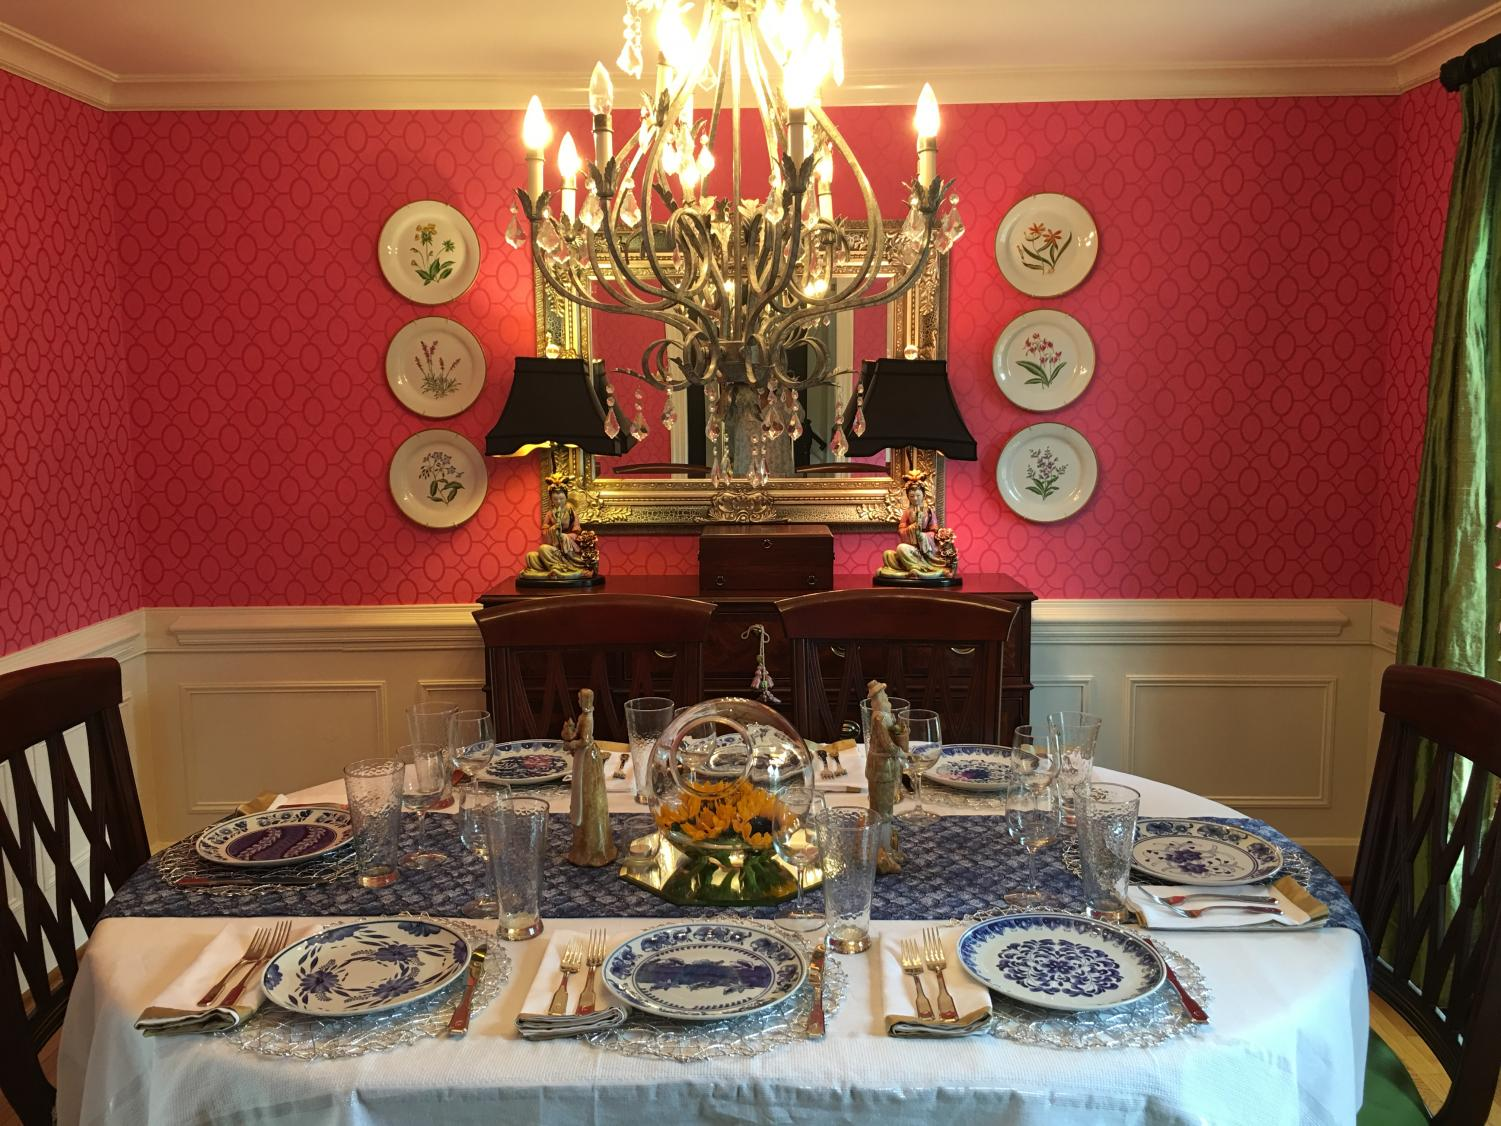 Preparing for a gracious crowd, a good hostess should always know how to properly set a table. It is important remember the proper silverware placement in correlation to the plate, as well as correctly place the napkin and drinking glass in each place setting.